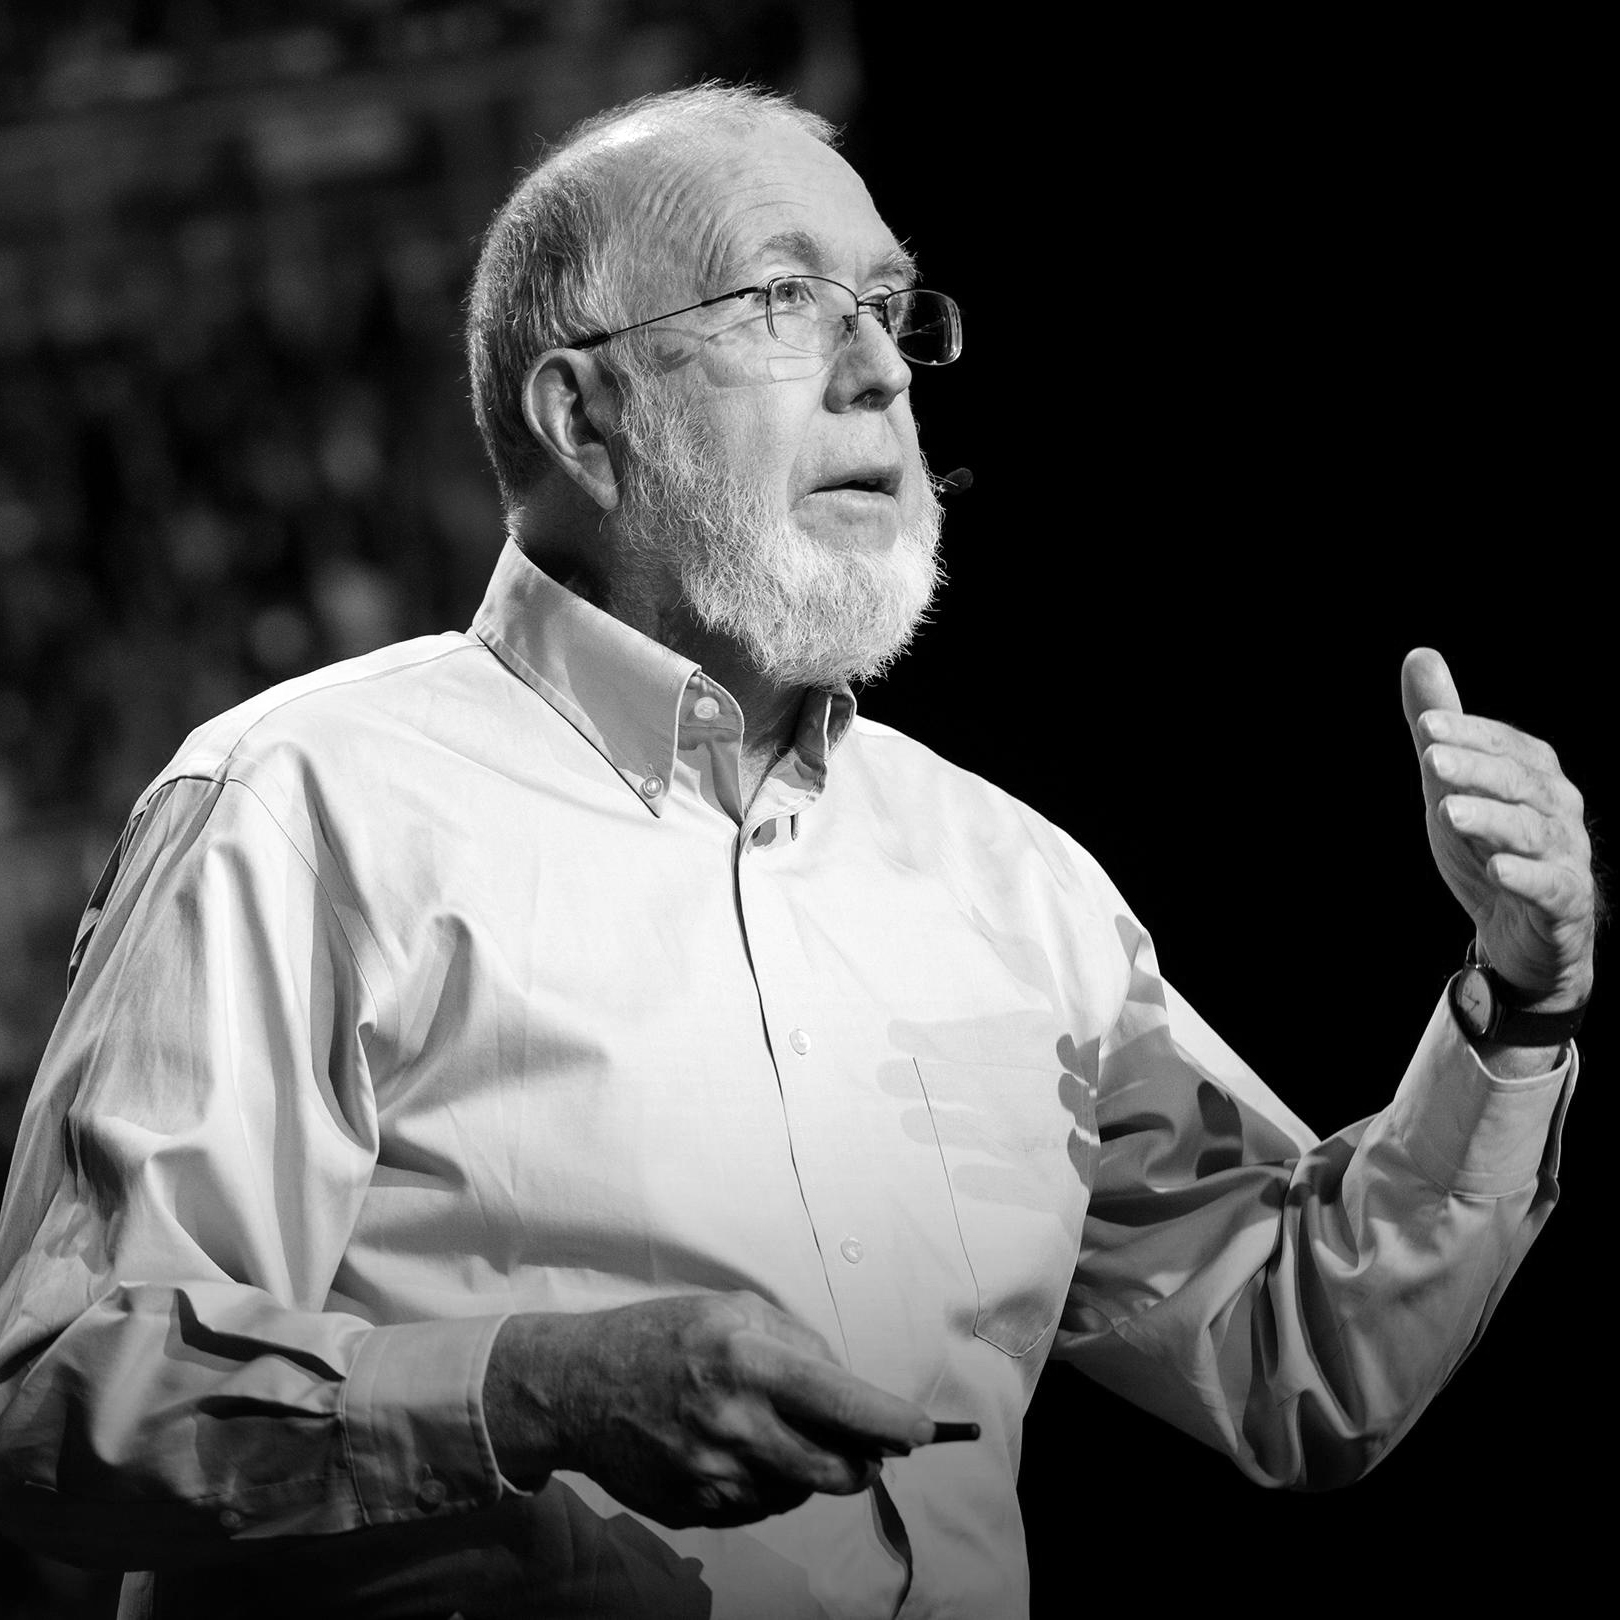 Kevin Kelly, Founder of Wired Magazine